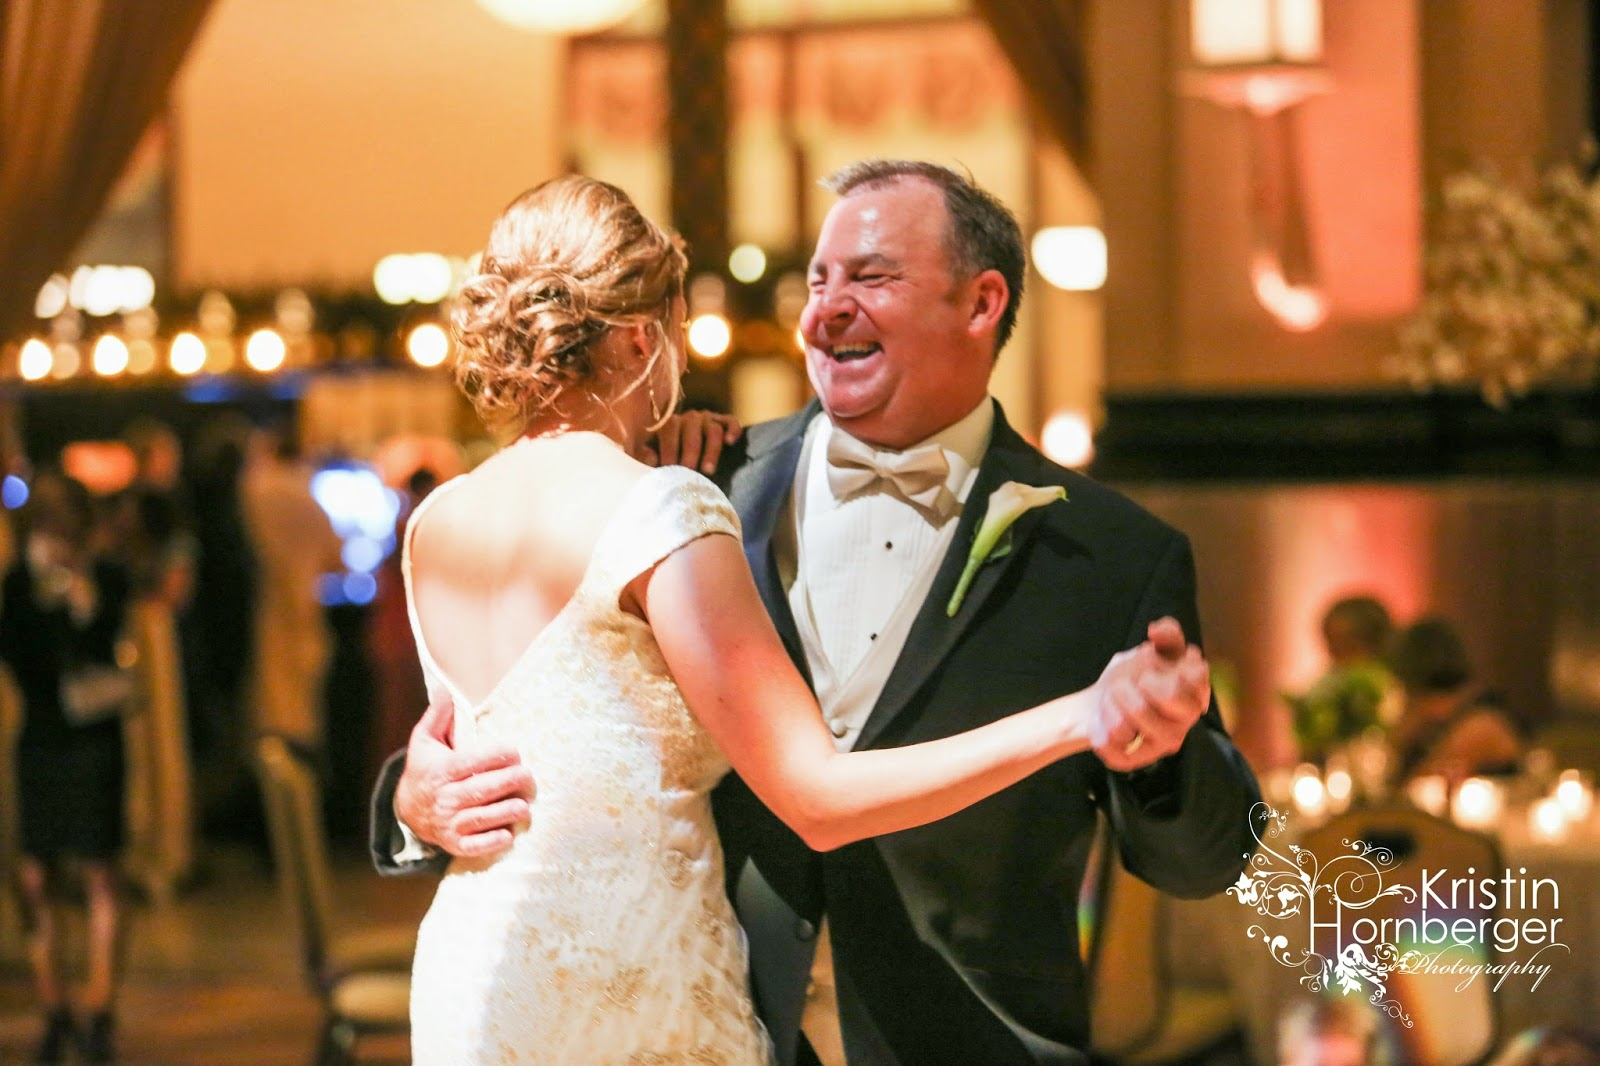 Your Wedding Is One Of The Most Special Nights Life Filled With Several Sentimental Moments That You Will Want To Remember Forever